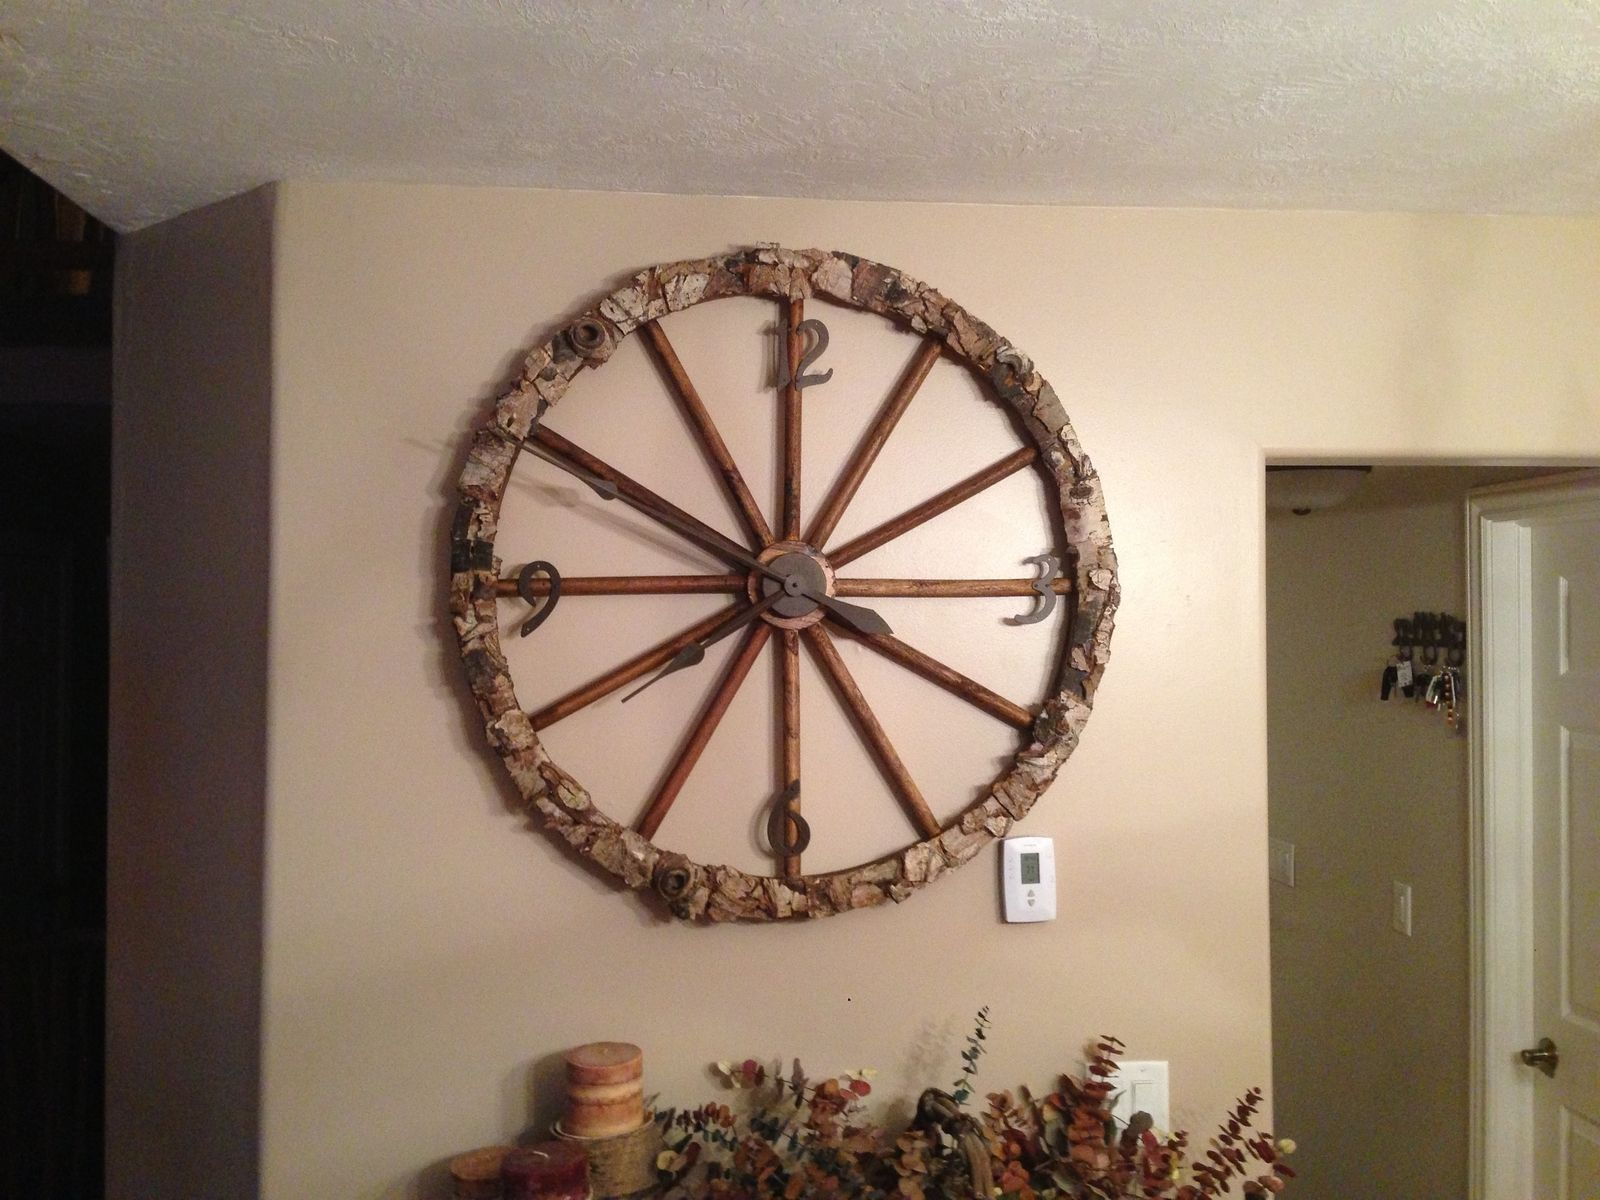 Hand Made Wagon Wheel Clock By Twisted Tine Antler Design